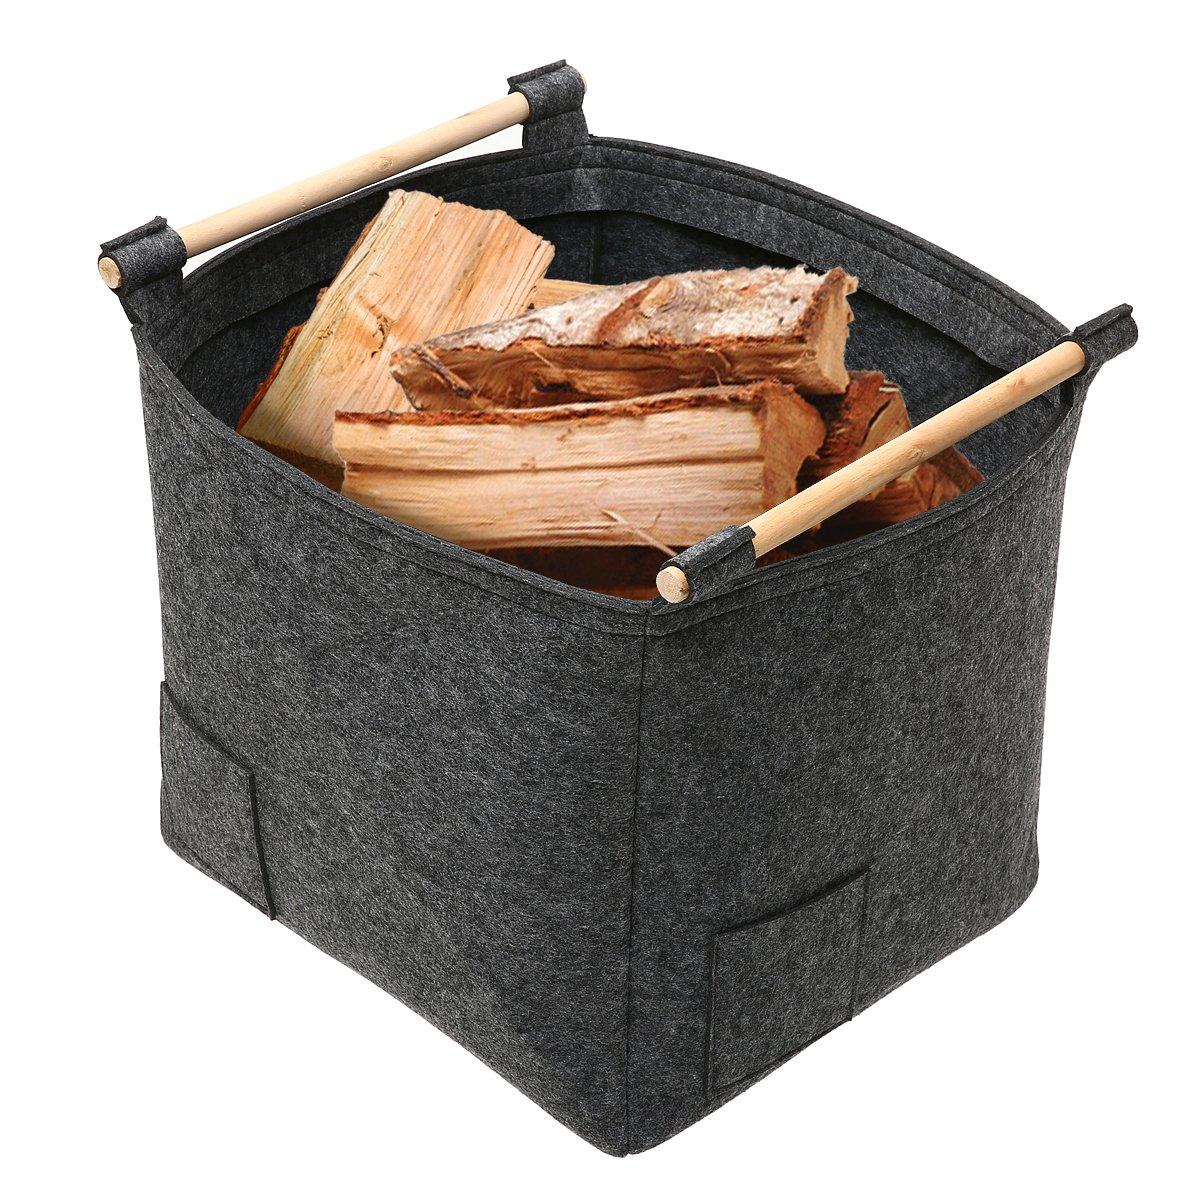 Firewood Basket, Essort Felt Storage Basket, Firewood Bag with Wood Holder, Multi-function Foldable Portable Basket Containers for Kids Toy Clothing Laundry